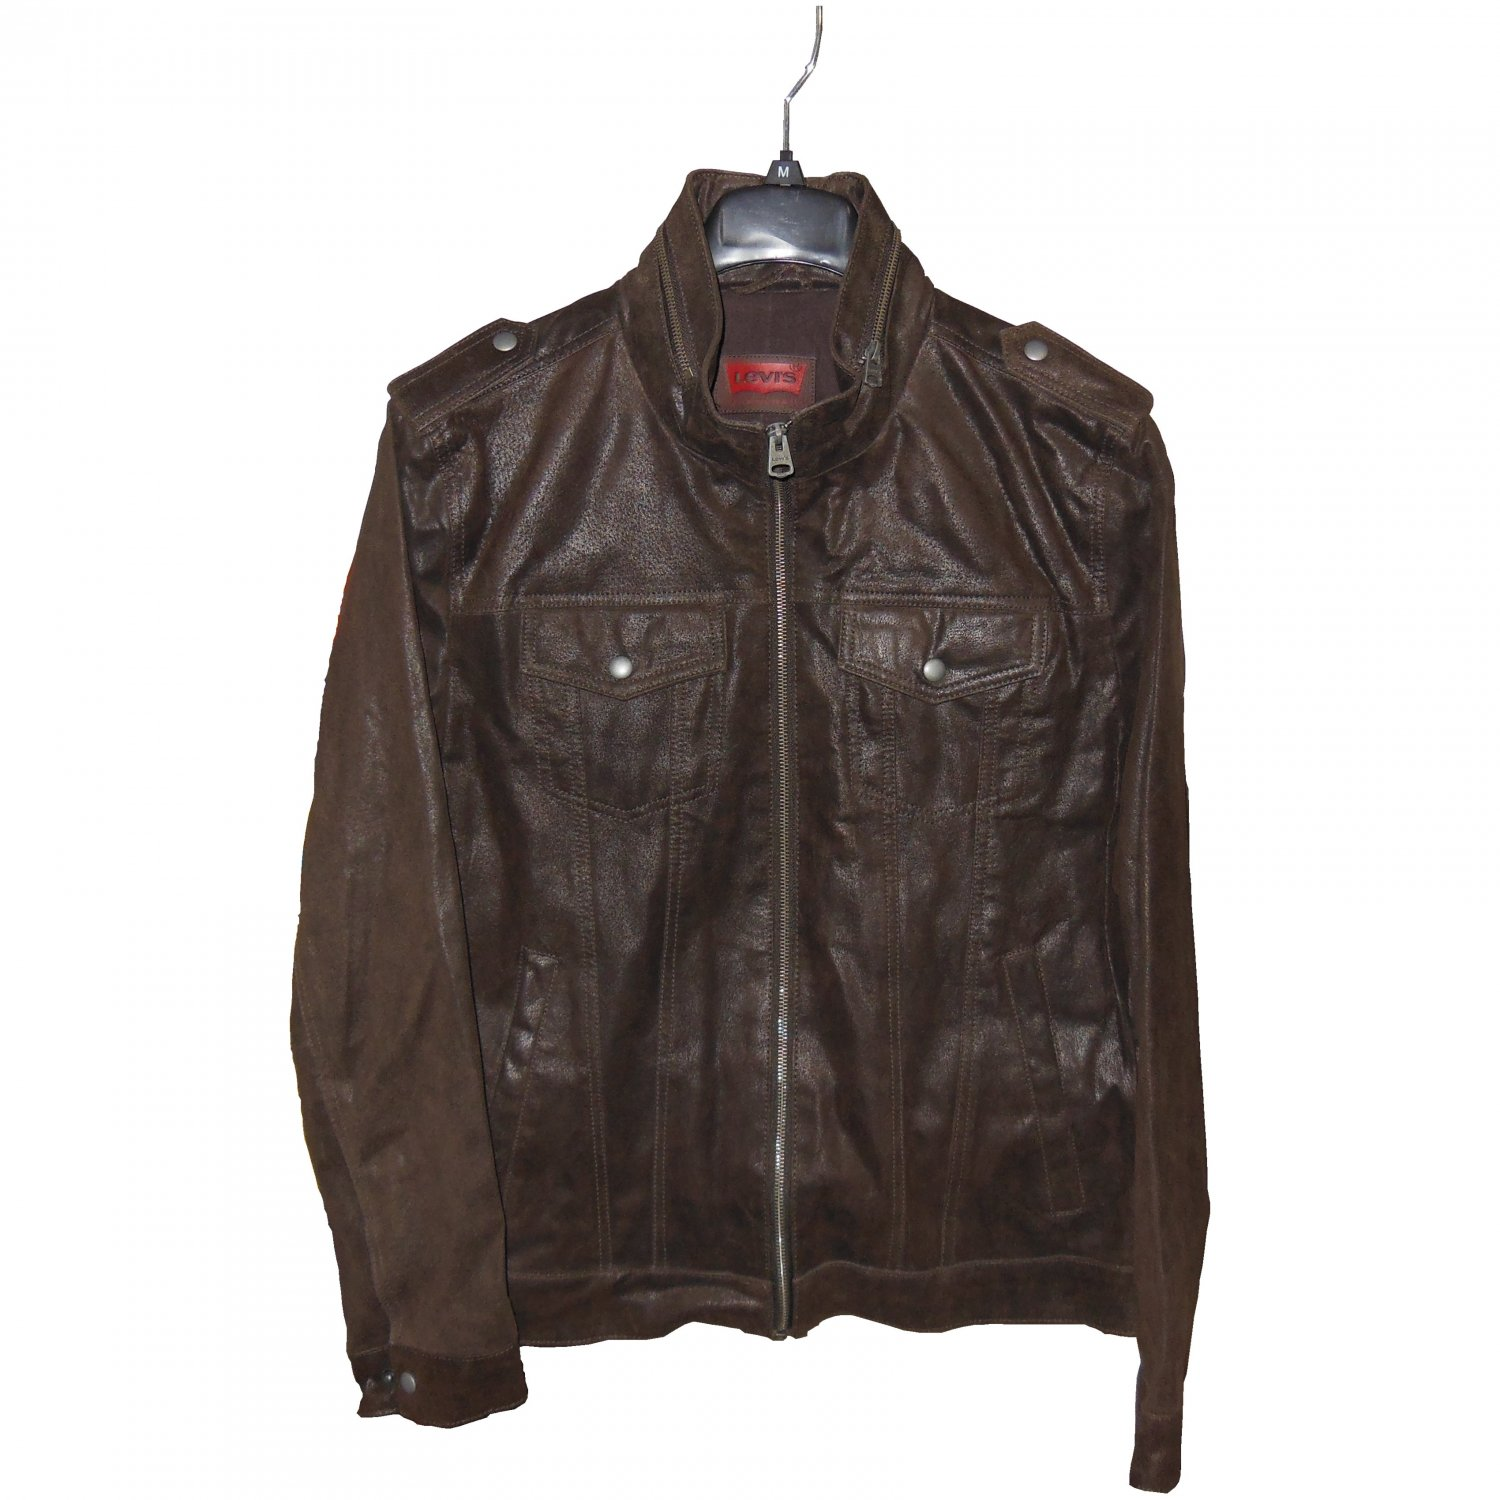 Levi's Zip Military Trucker 100% Leather Jacket Dark Brown LM3R6400, Large